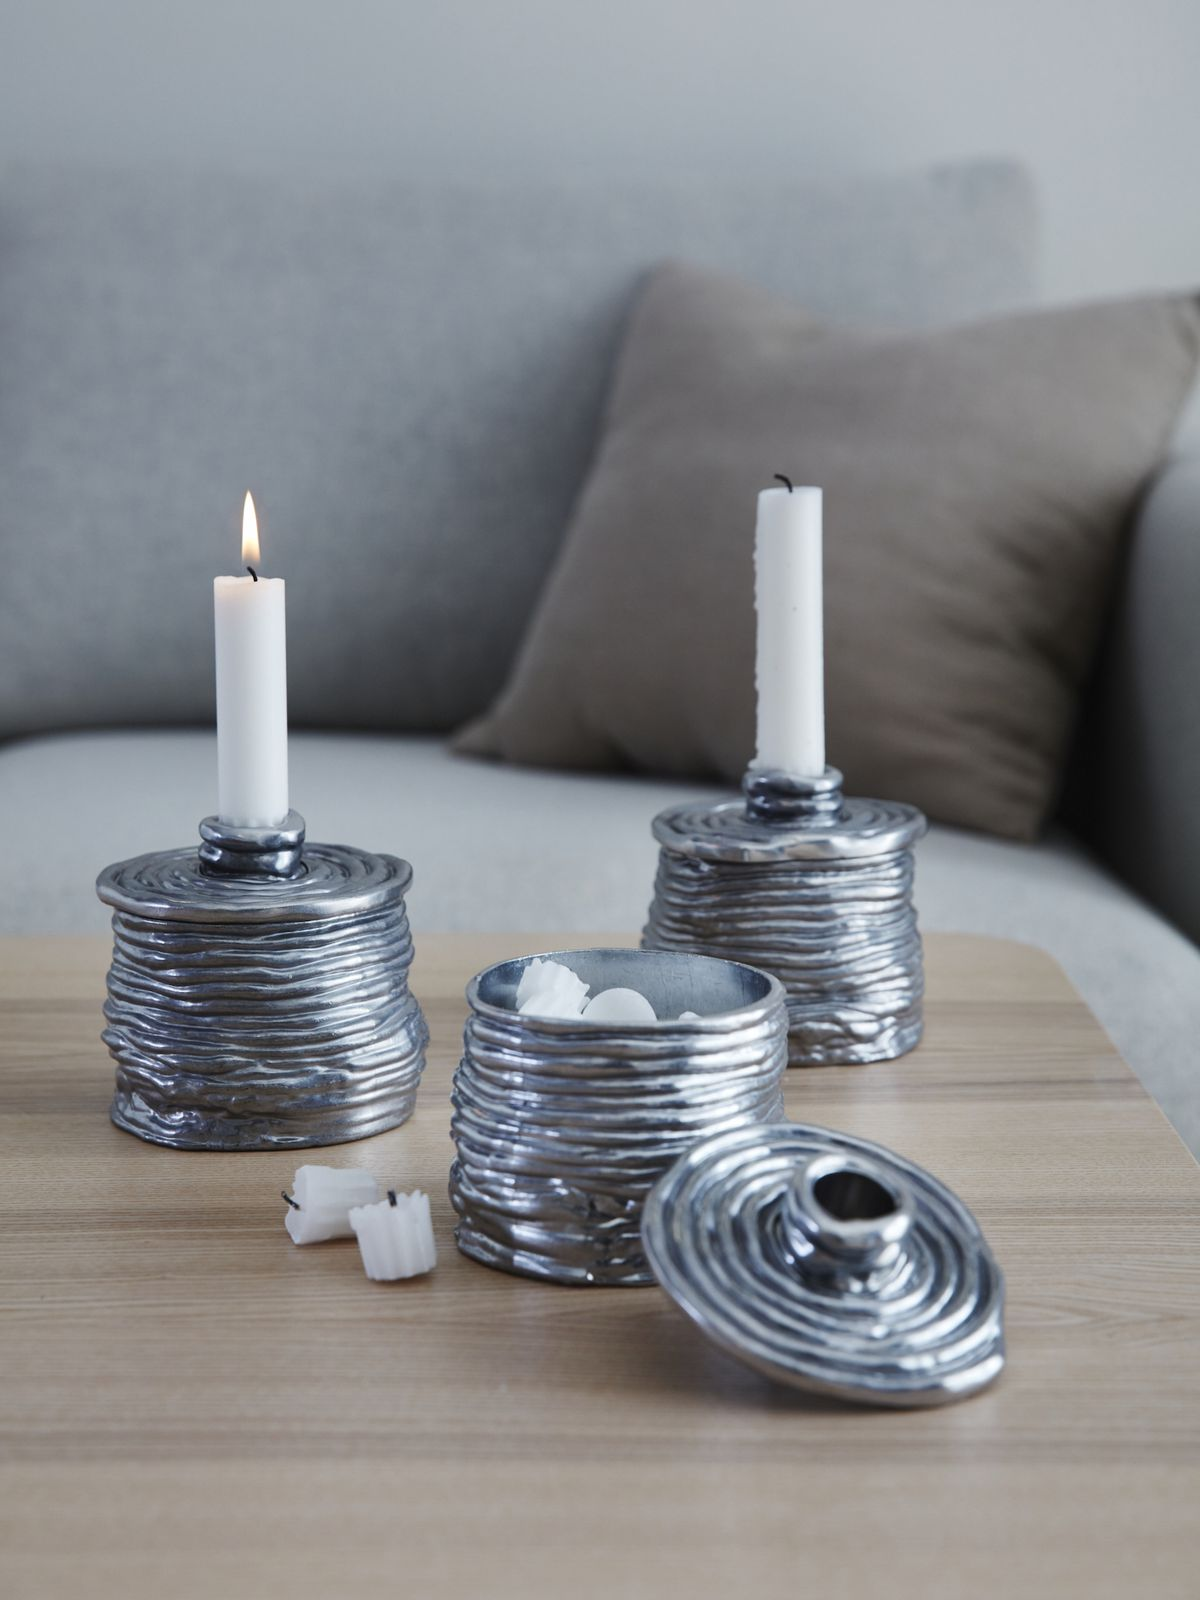 Three silver candle holders with removable lids sits on a table.